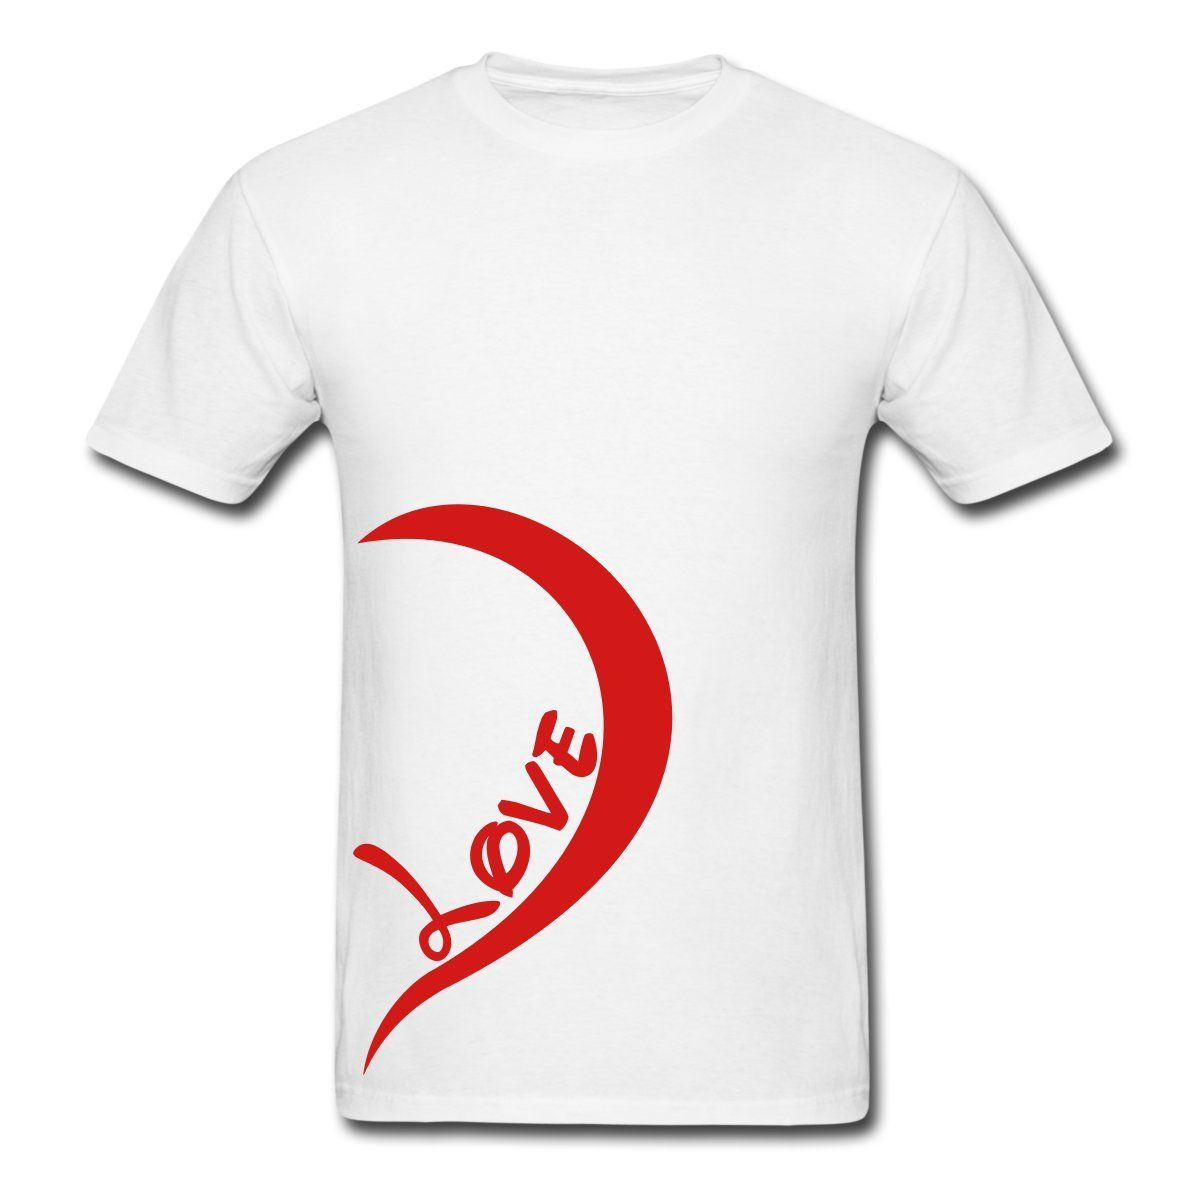 Shirt design for couples - One Love Matching Couples Part 2 Men S T Shirt 100 Cotton Short Sleeve O